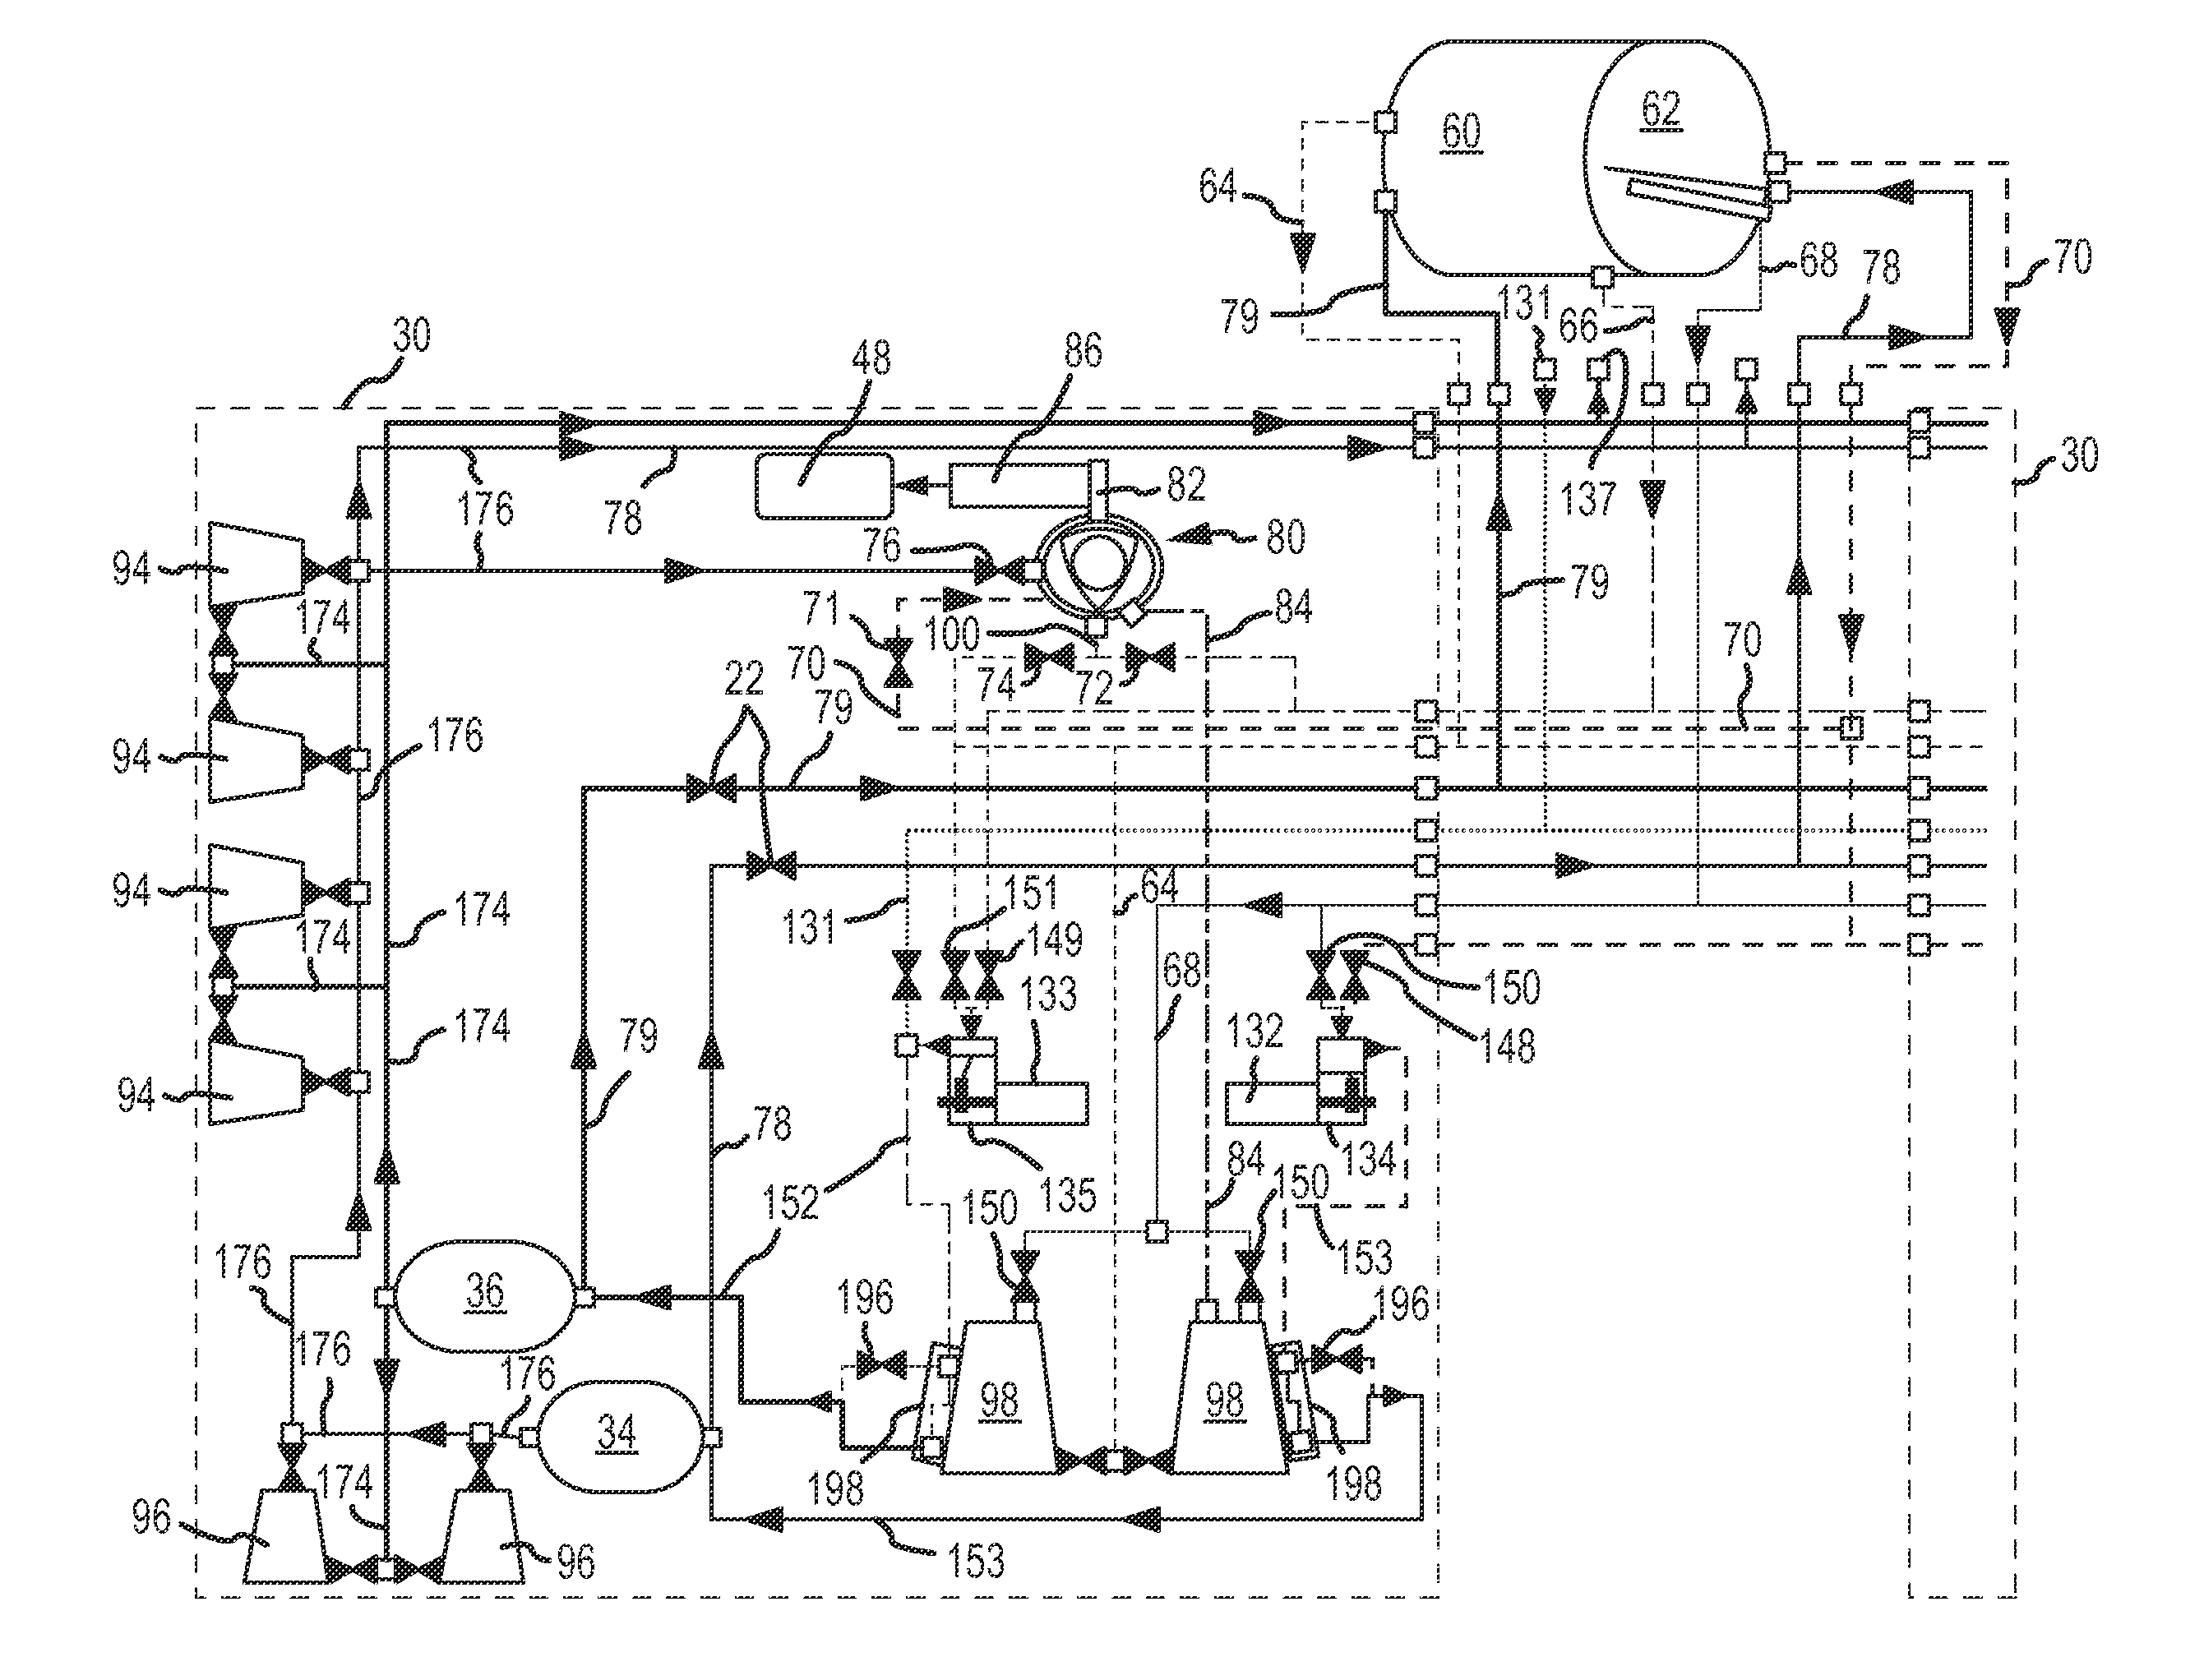 US20120227374A1 20120913 D00000?resize\\\=665%2C507 limitorque mov wiring diagram limitorque wiring of limit switches limit switch wiring diagram motor at gsmx.co